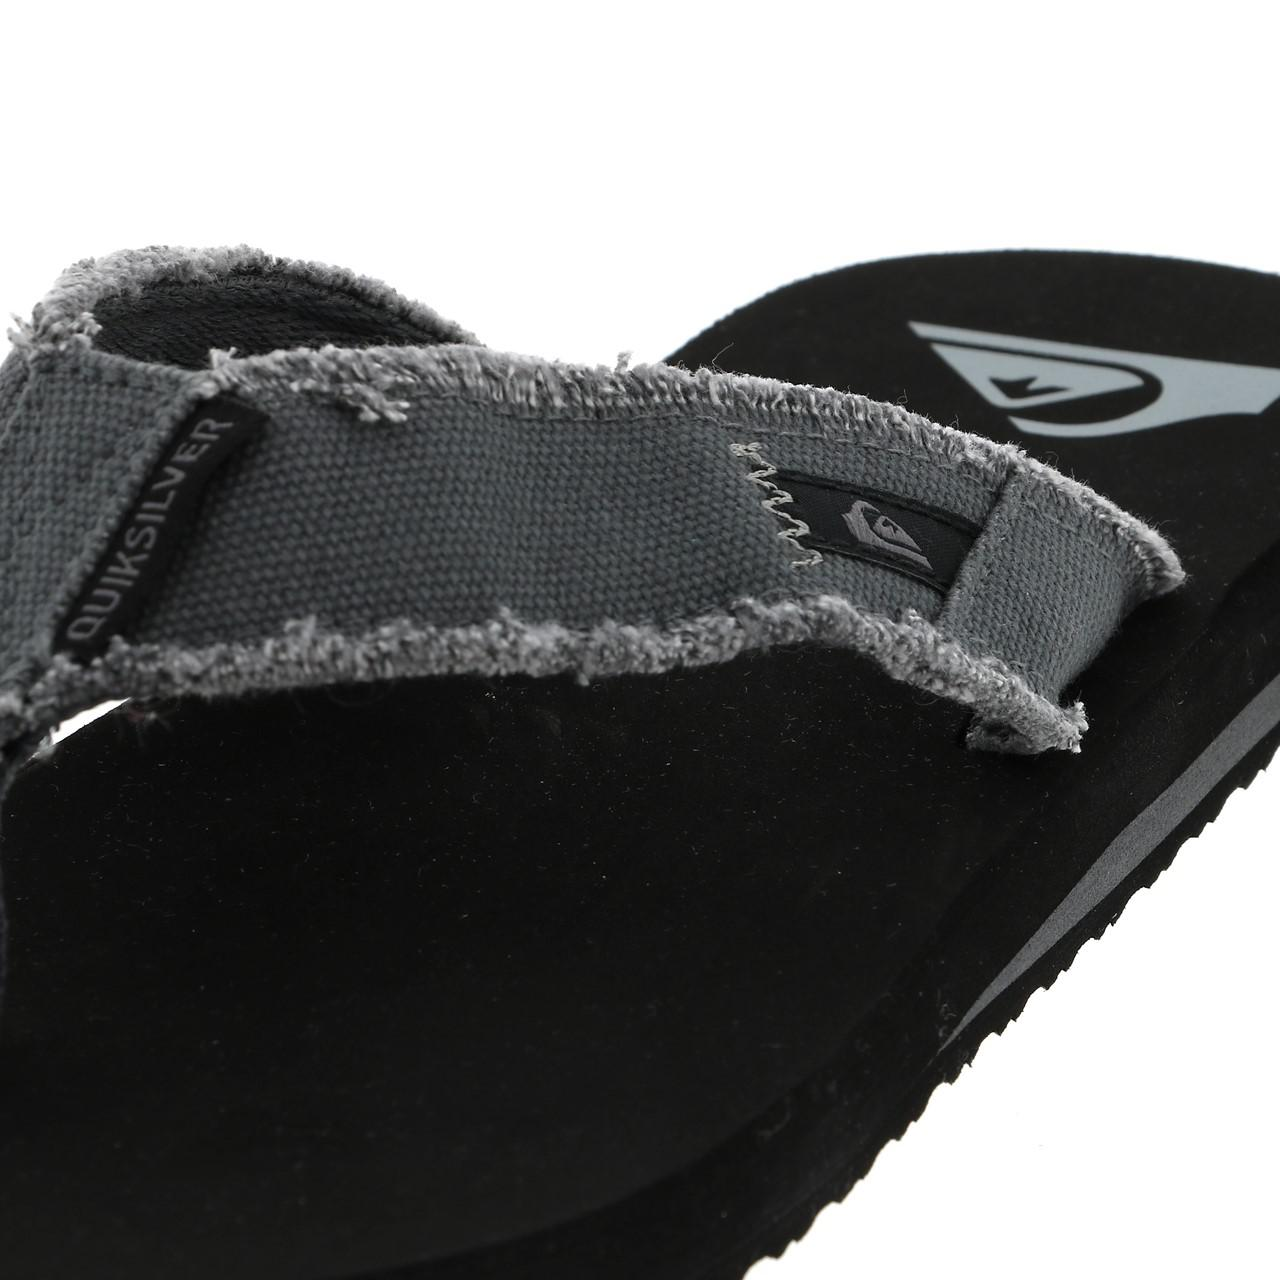 Flip-Flops-Tap-Dance-Shoes-Quiksilver-Monkey-Abyss-Groups-Blk-Flop-Grey-17978 thumbnail 2